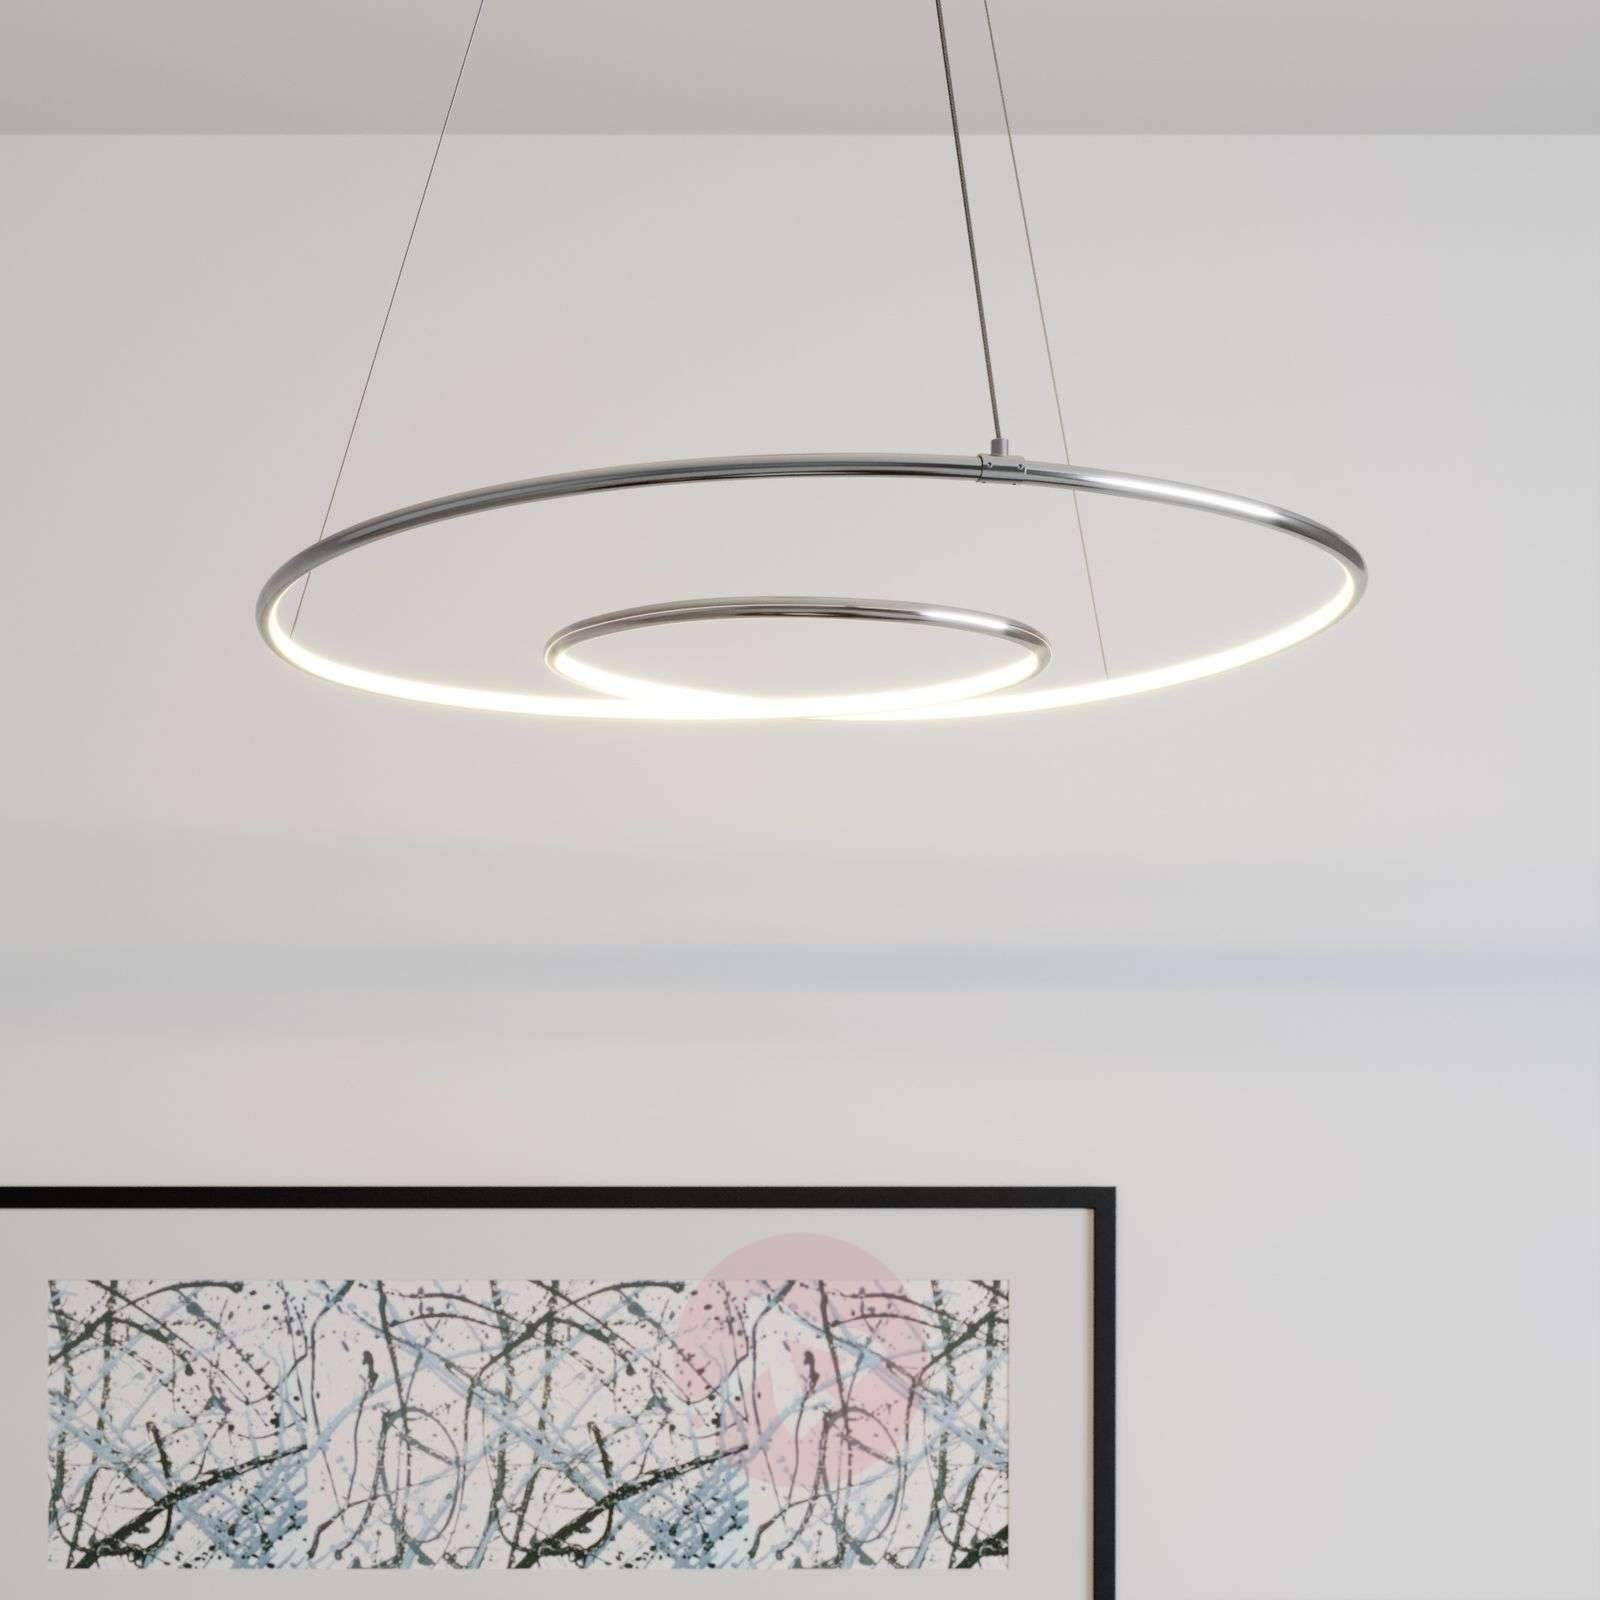 Lindby Lucy sospensione LED, 70cm, cromo-9639142-02